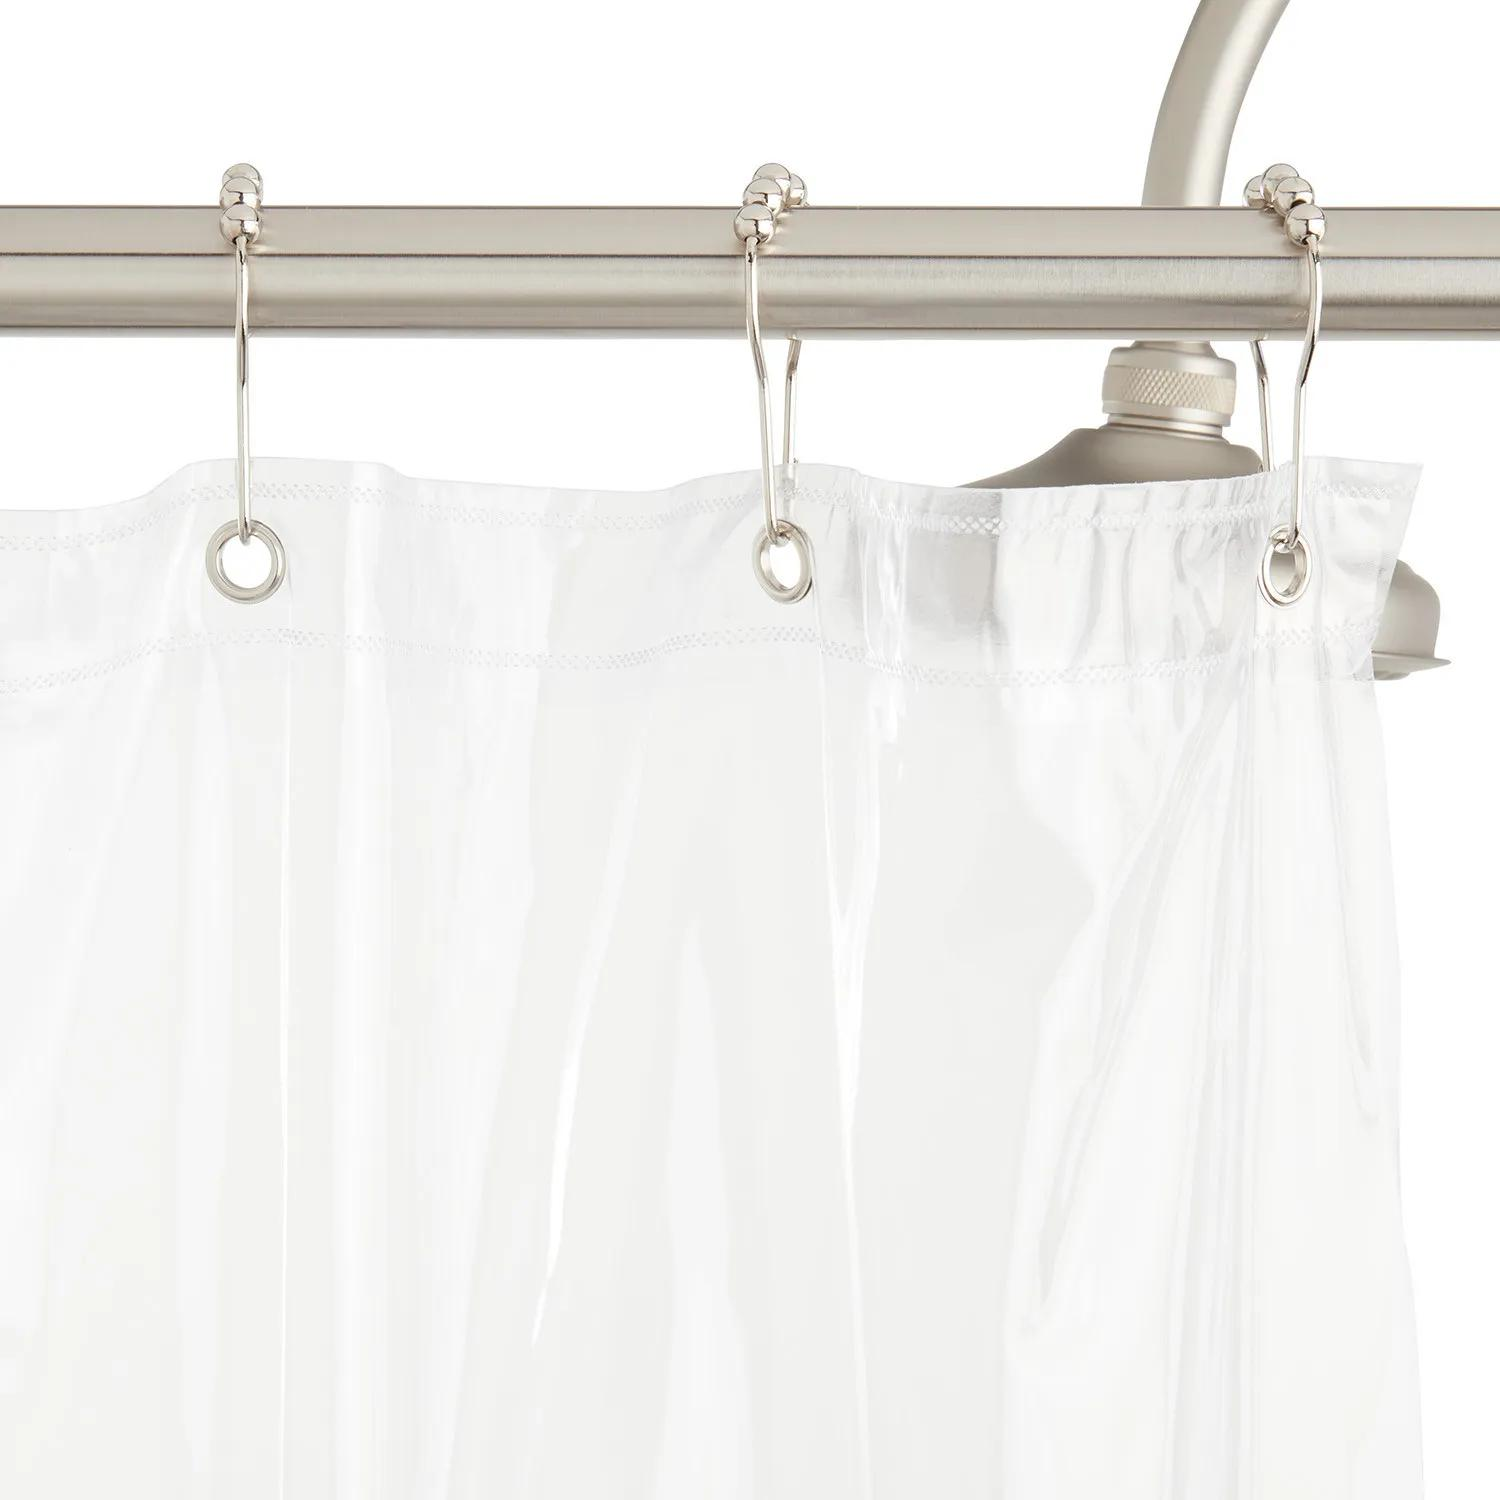 Vinyl Shower Curtain Clear Bathroom